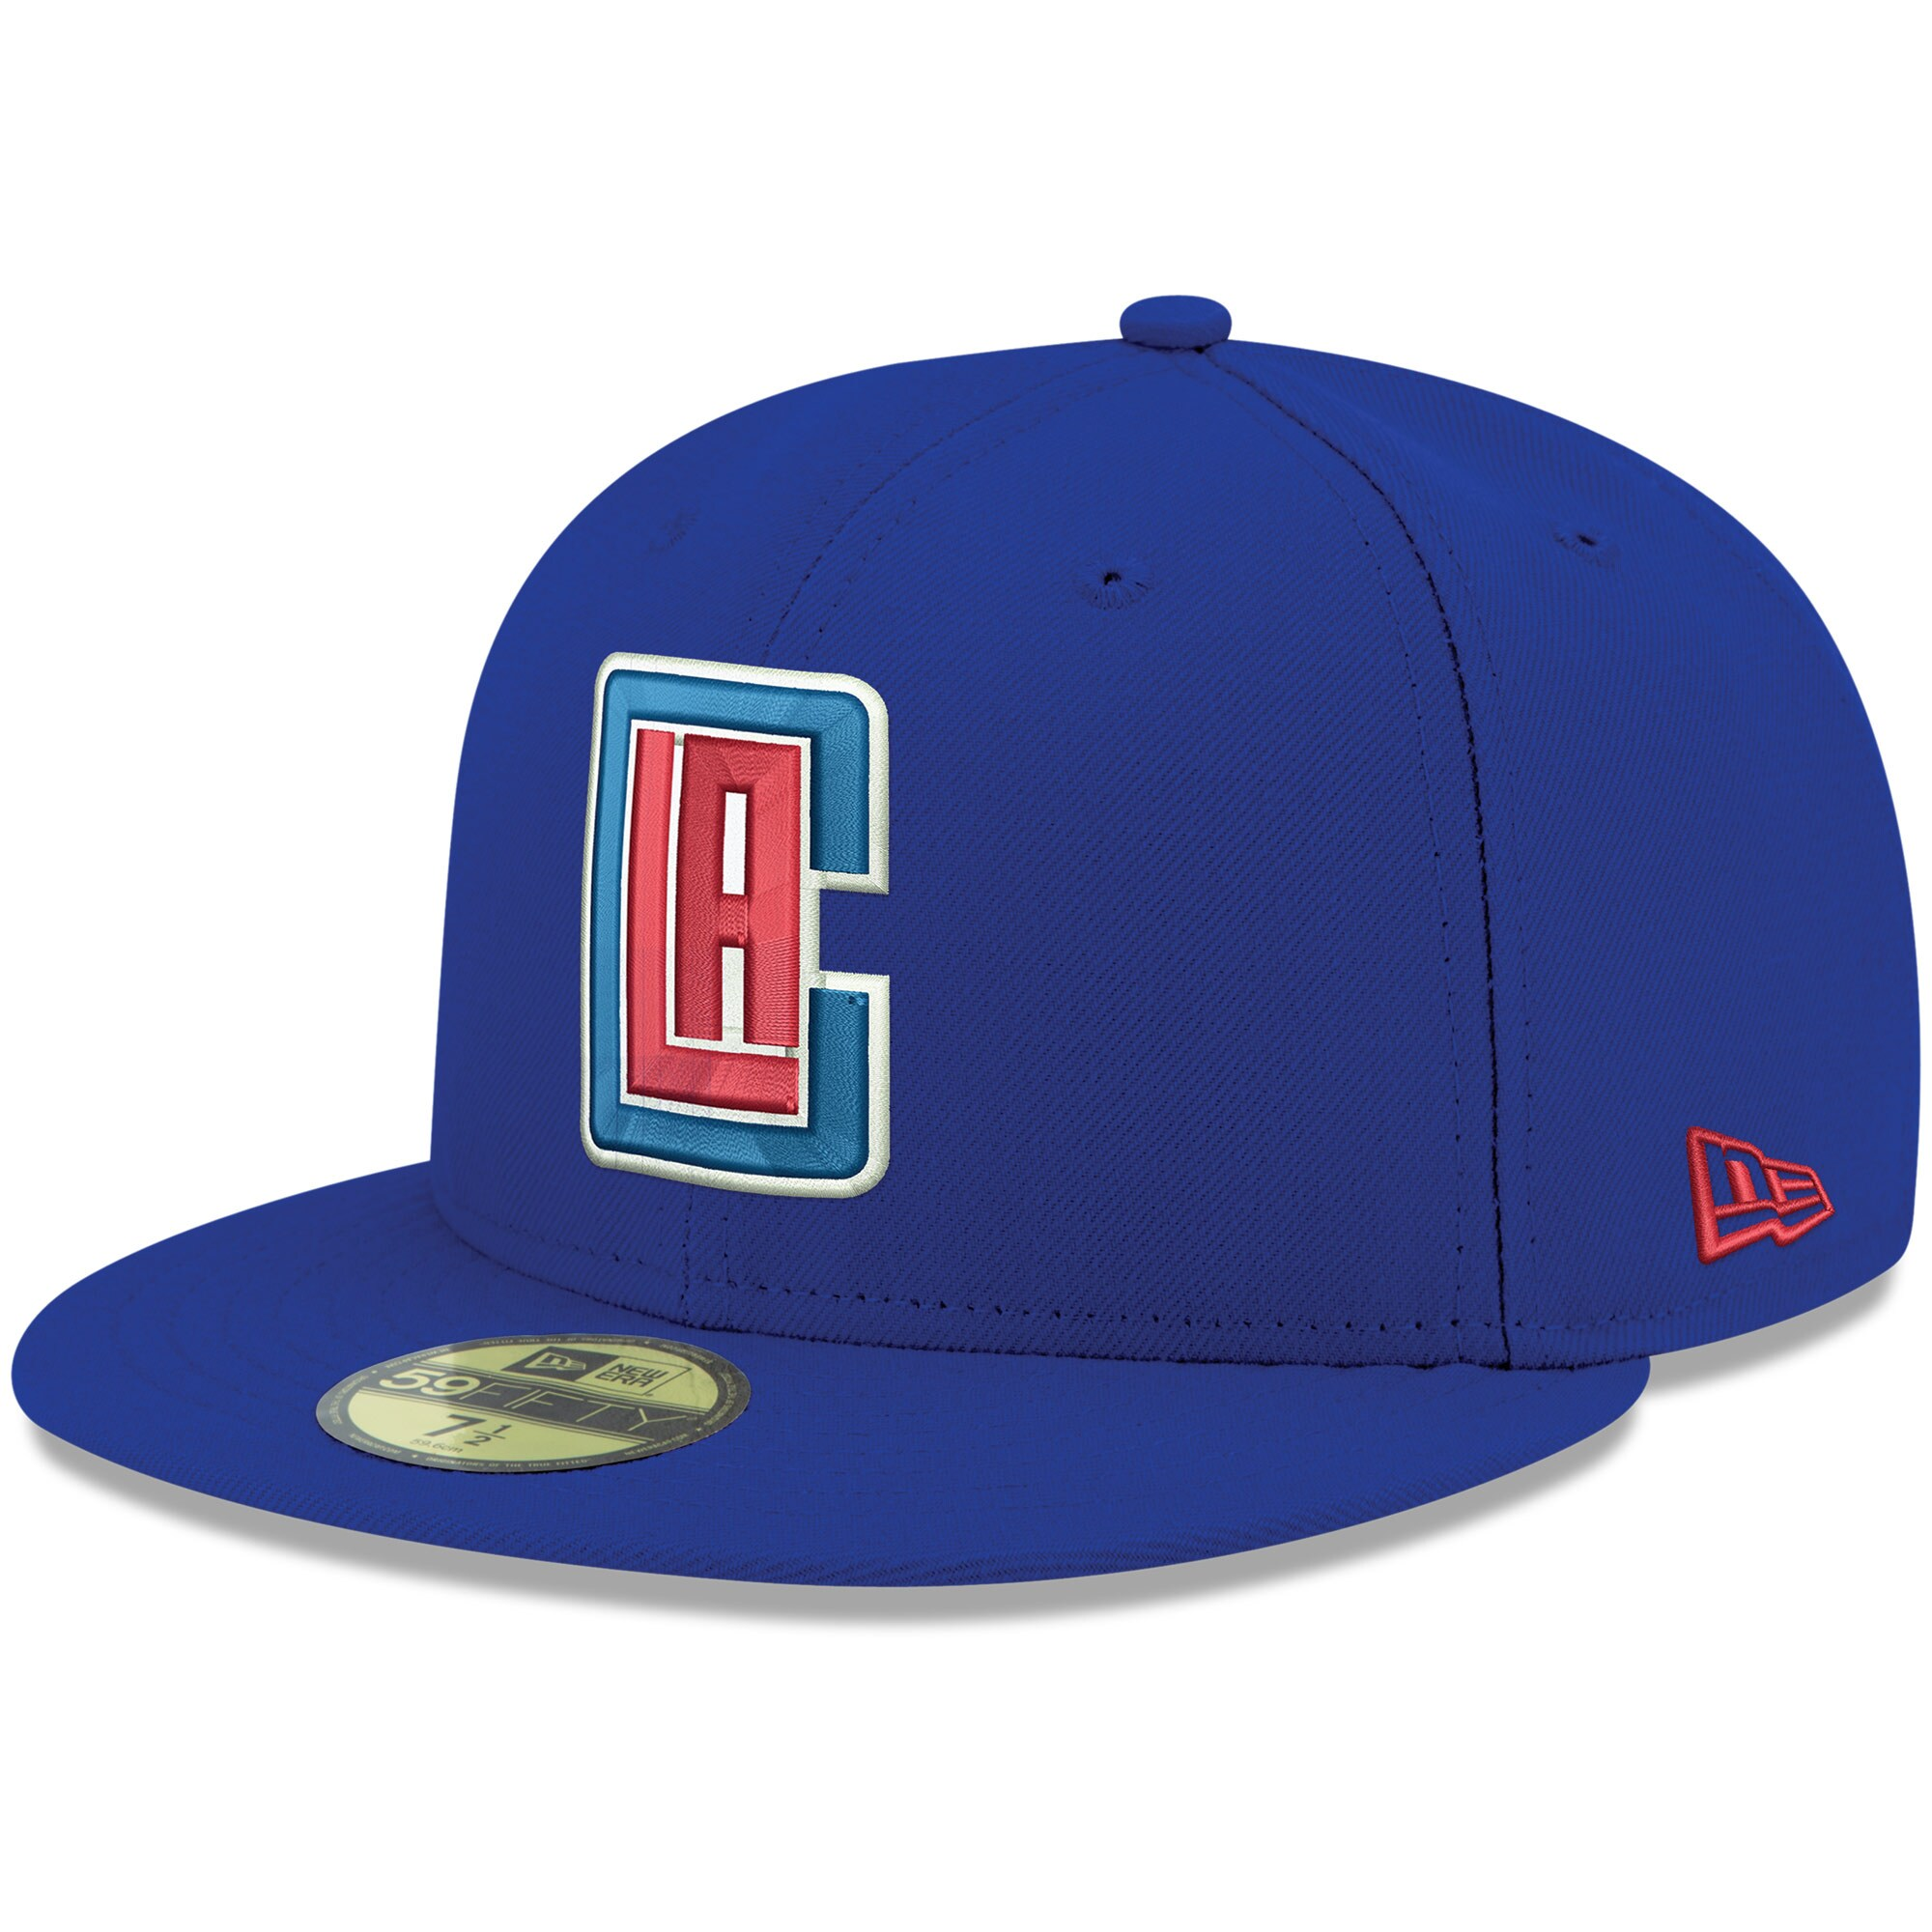 LA Clippers New Era Official Team Color 59FIFTY Fitted Hat - Royal